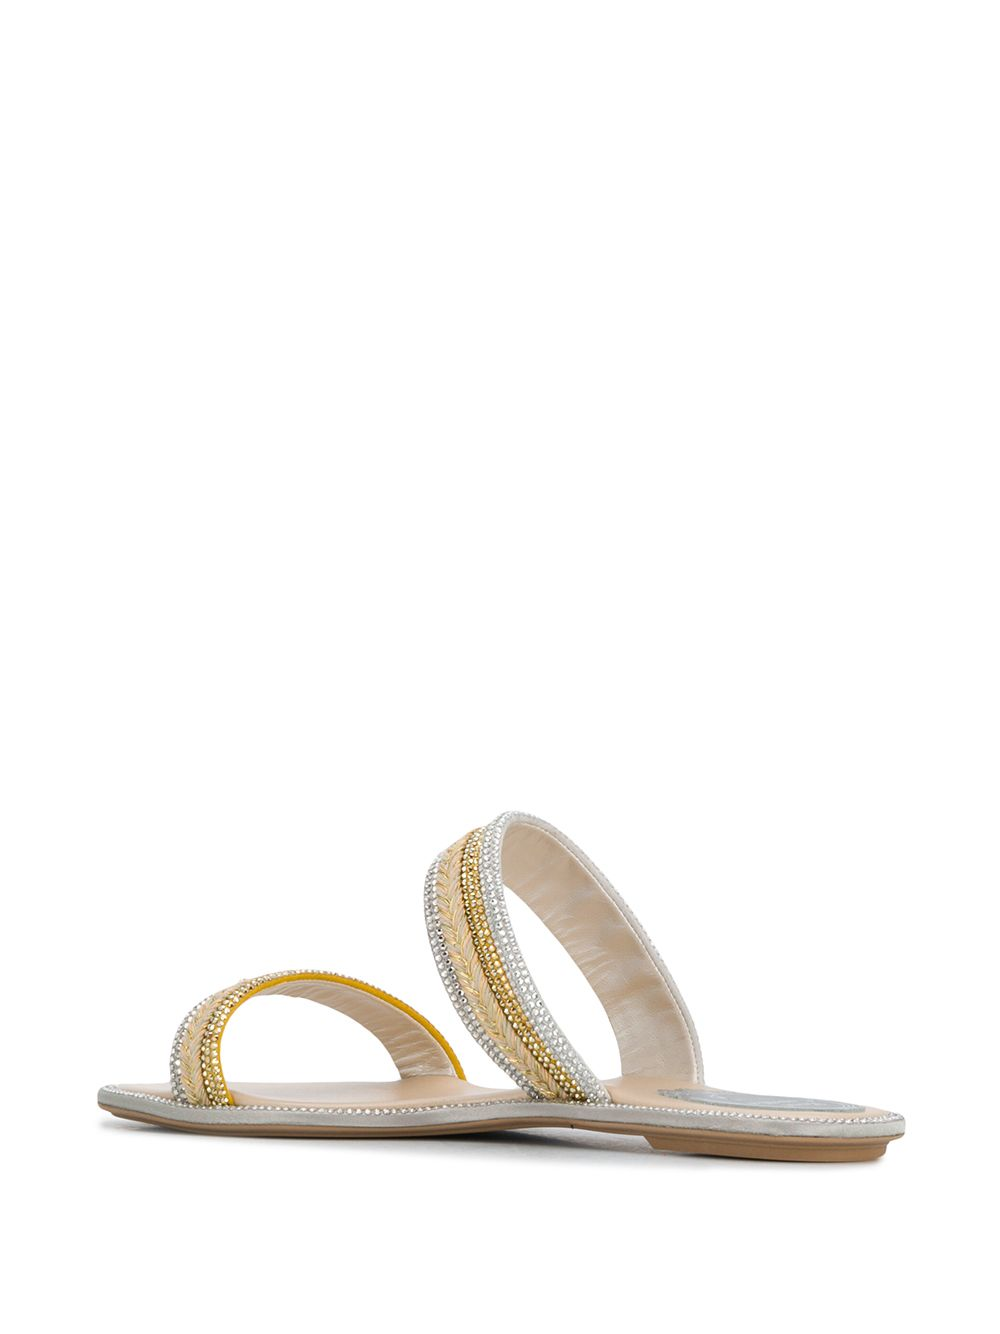 Picture of Rene Caovilla | Sandal